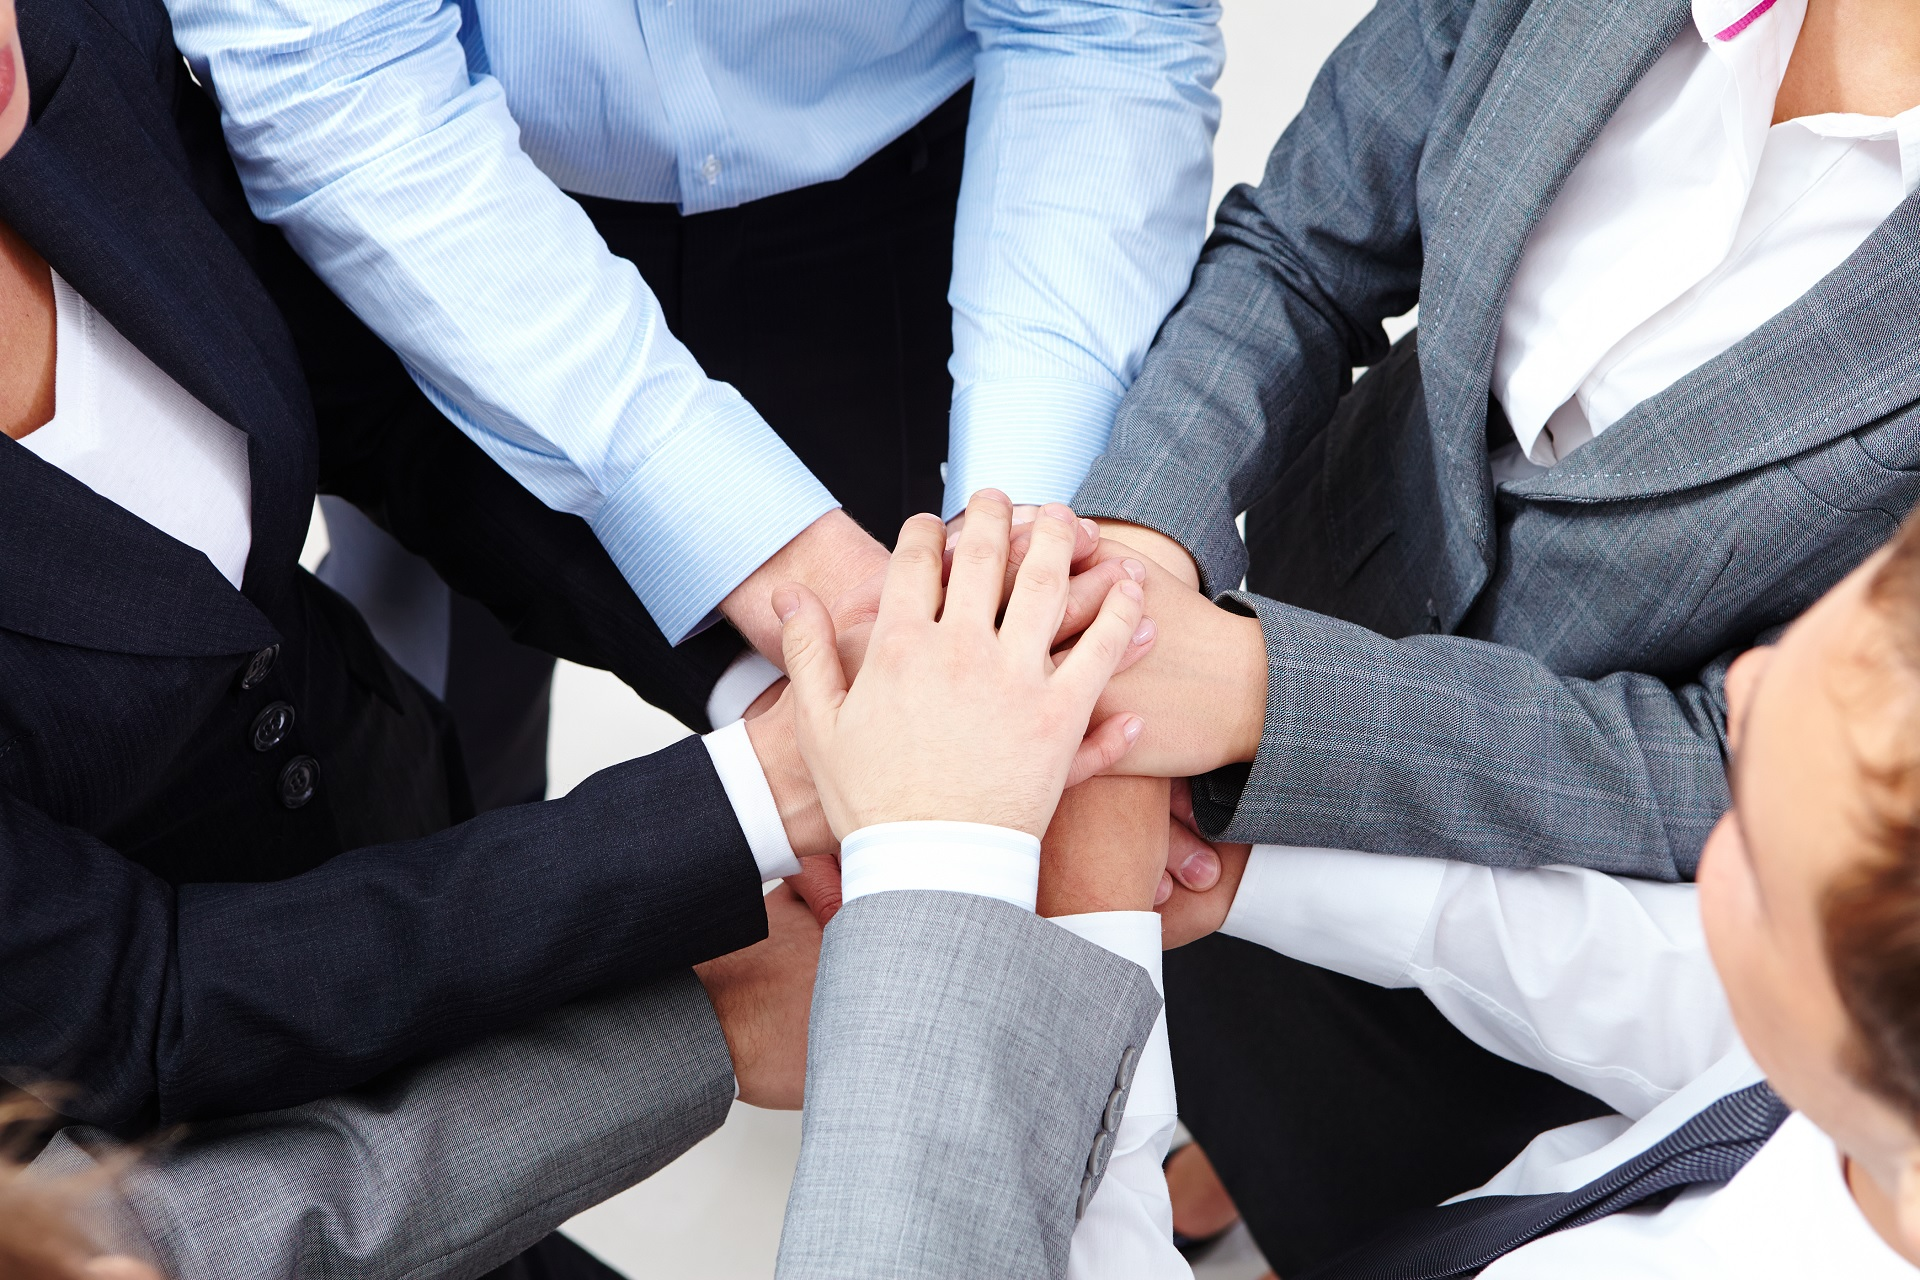 Group of people putting their hands in a circle